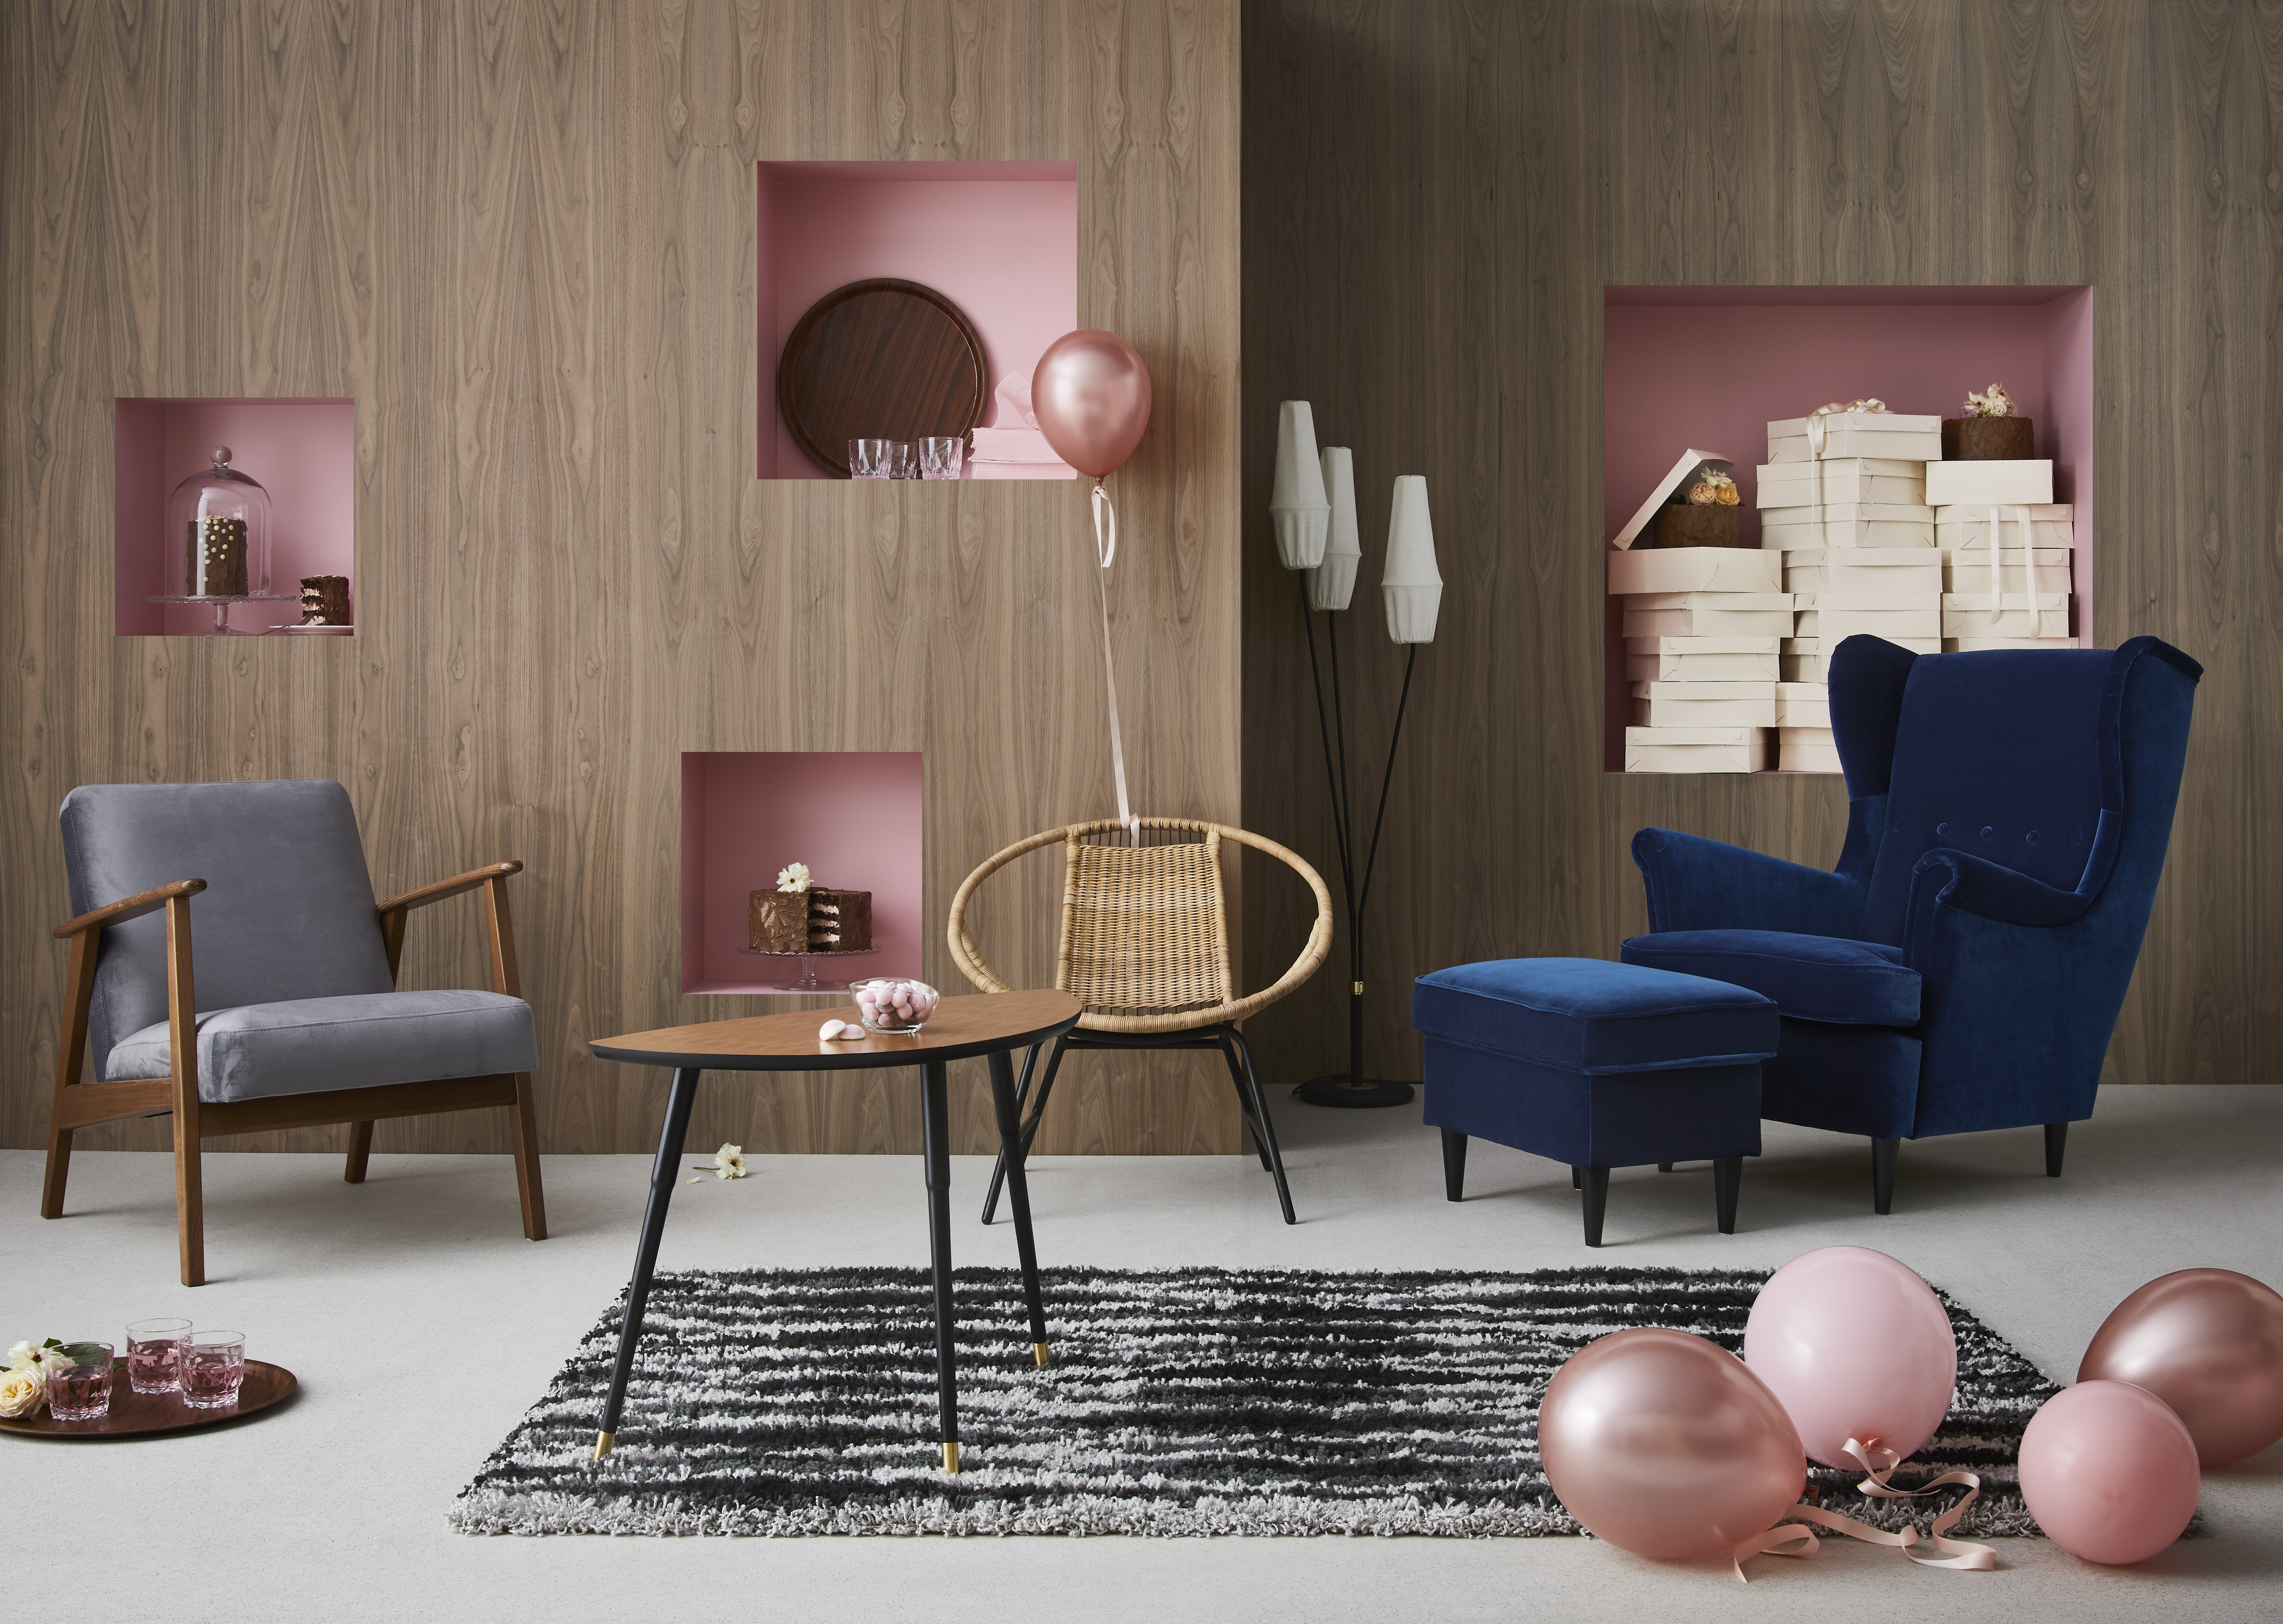 Ikea releasing vintage styles this fall